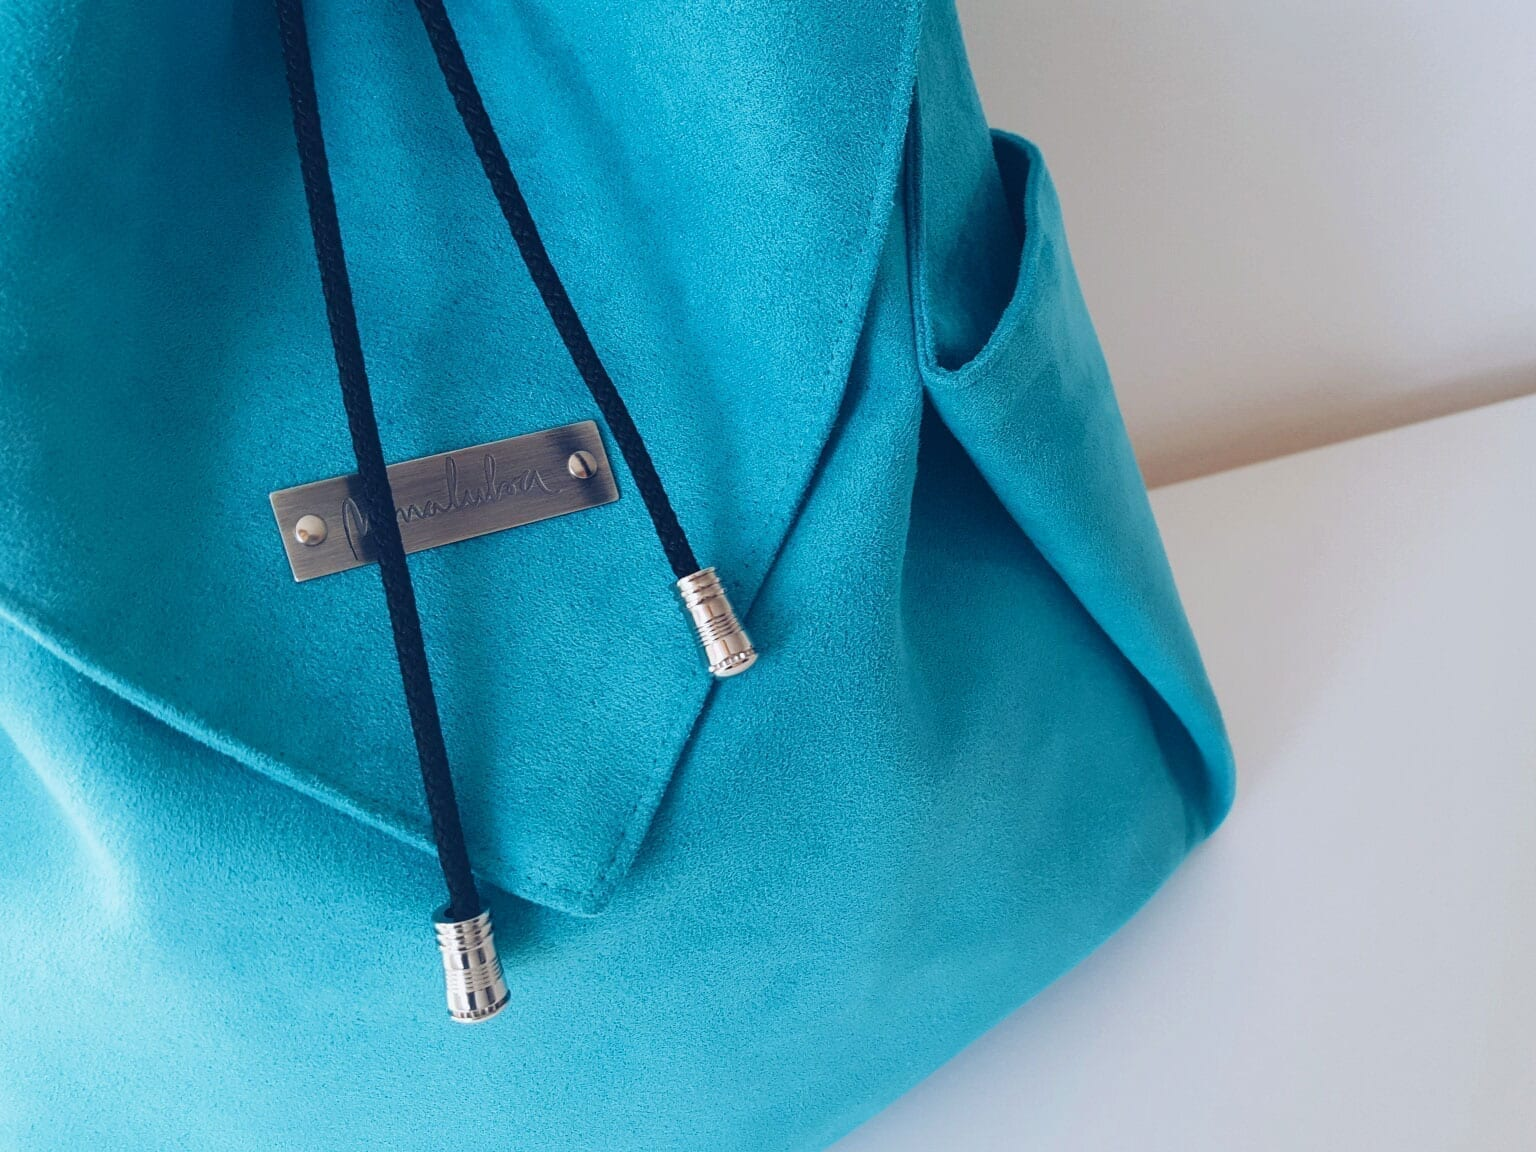 ORIGAMI Backpack_Turquoise (2)